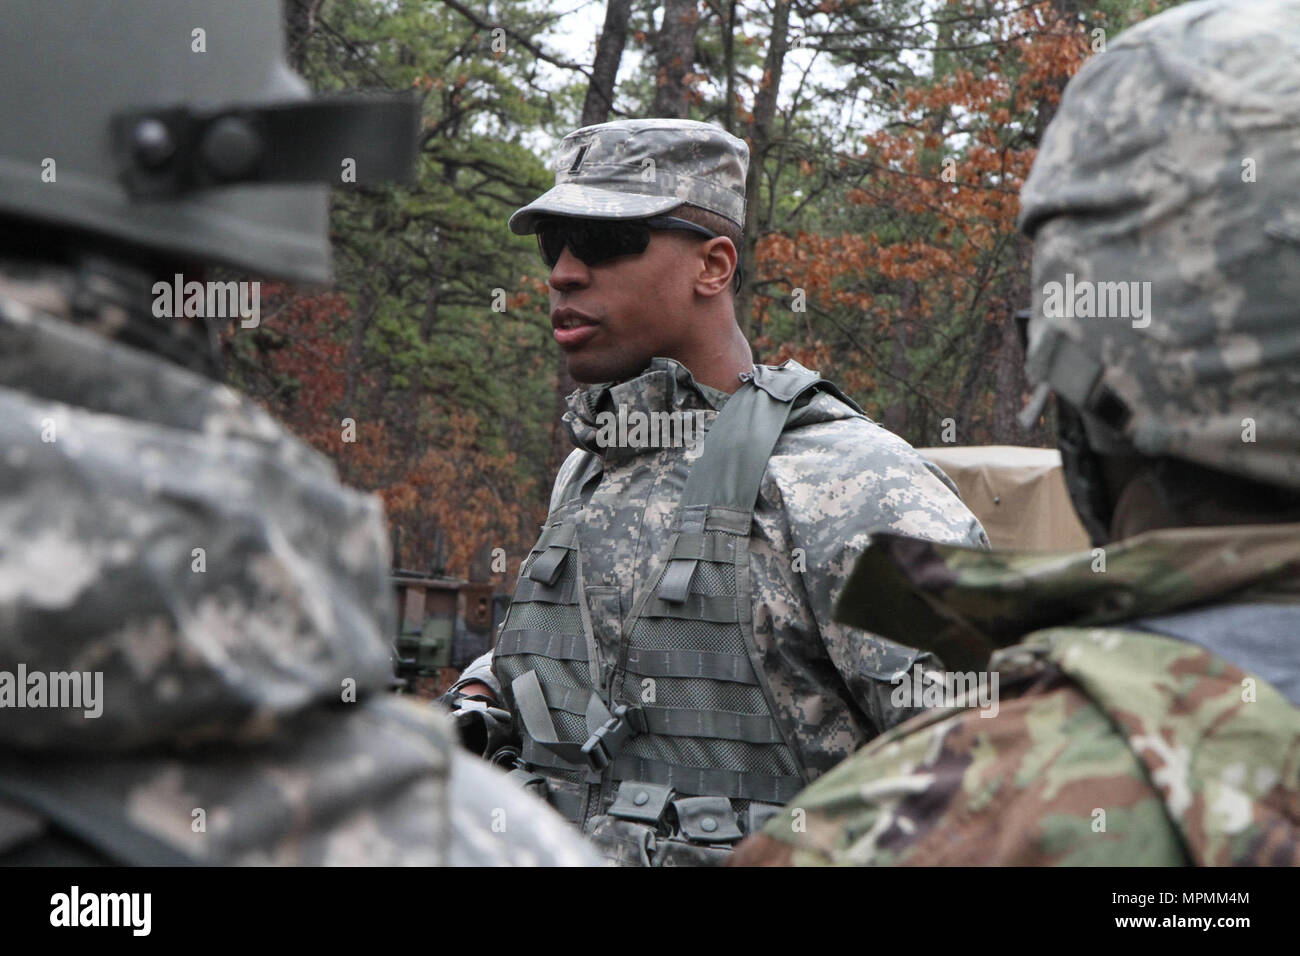 1st Lt Joseph Bowie Of The 78th Training Division An Observer Coach Trainer O CT For WAREX 78 17 01 Reviews Tactical Operations With Soldiers From